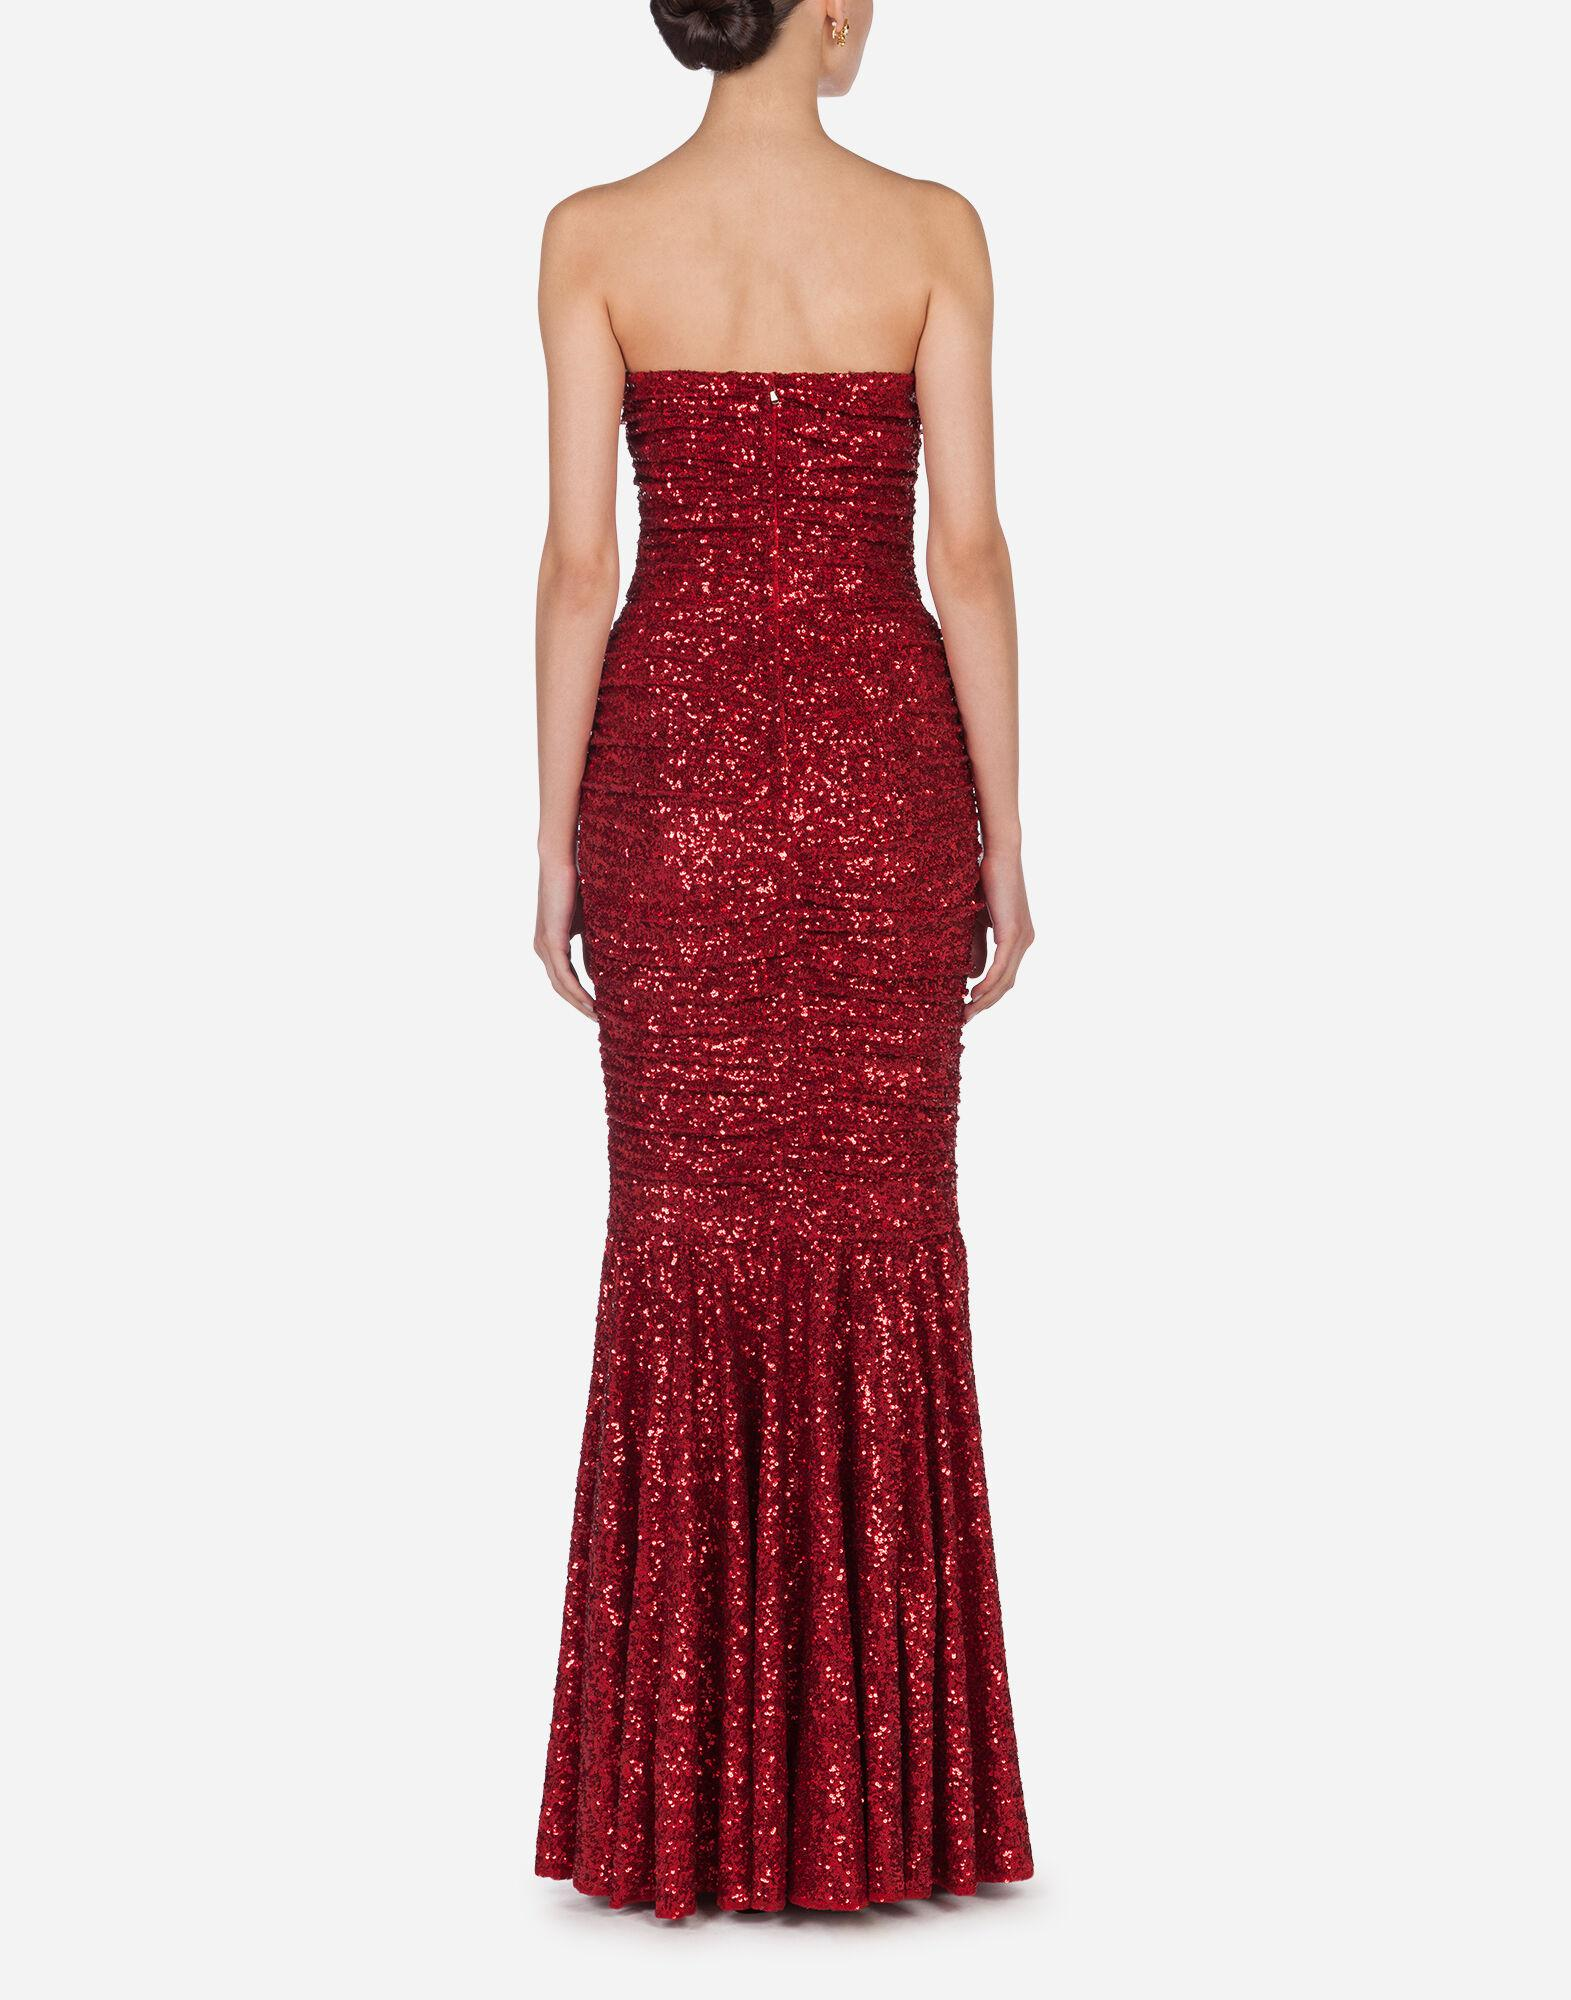 Long dress draped in sequins 1